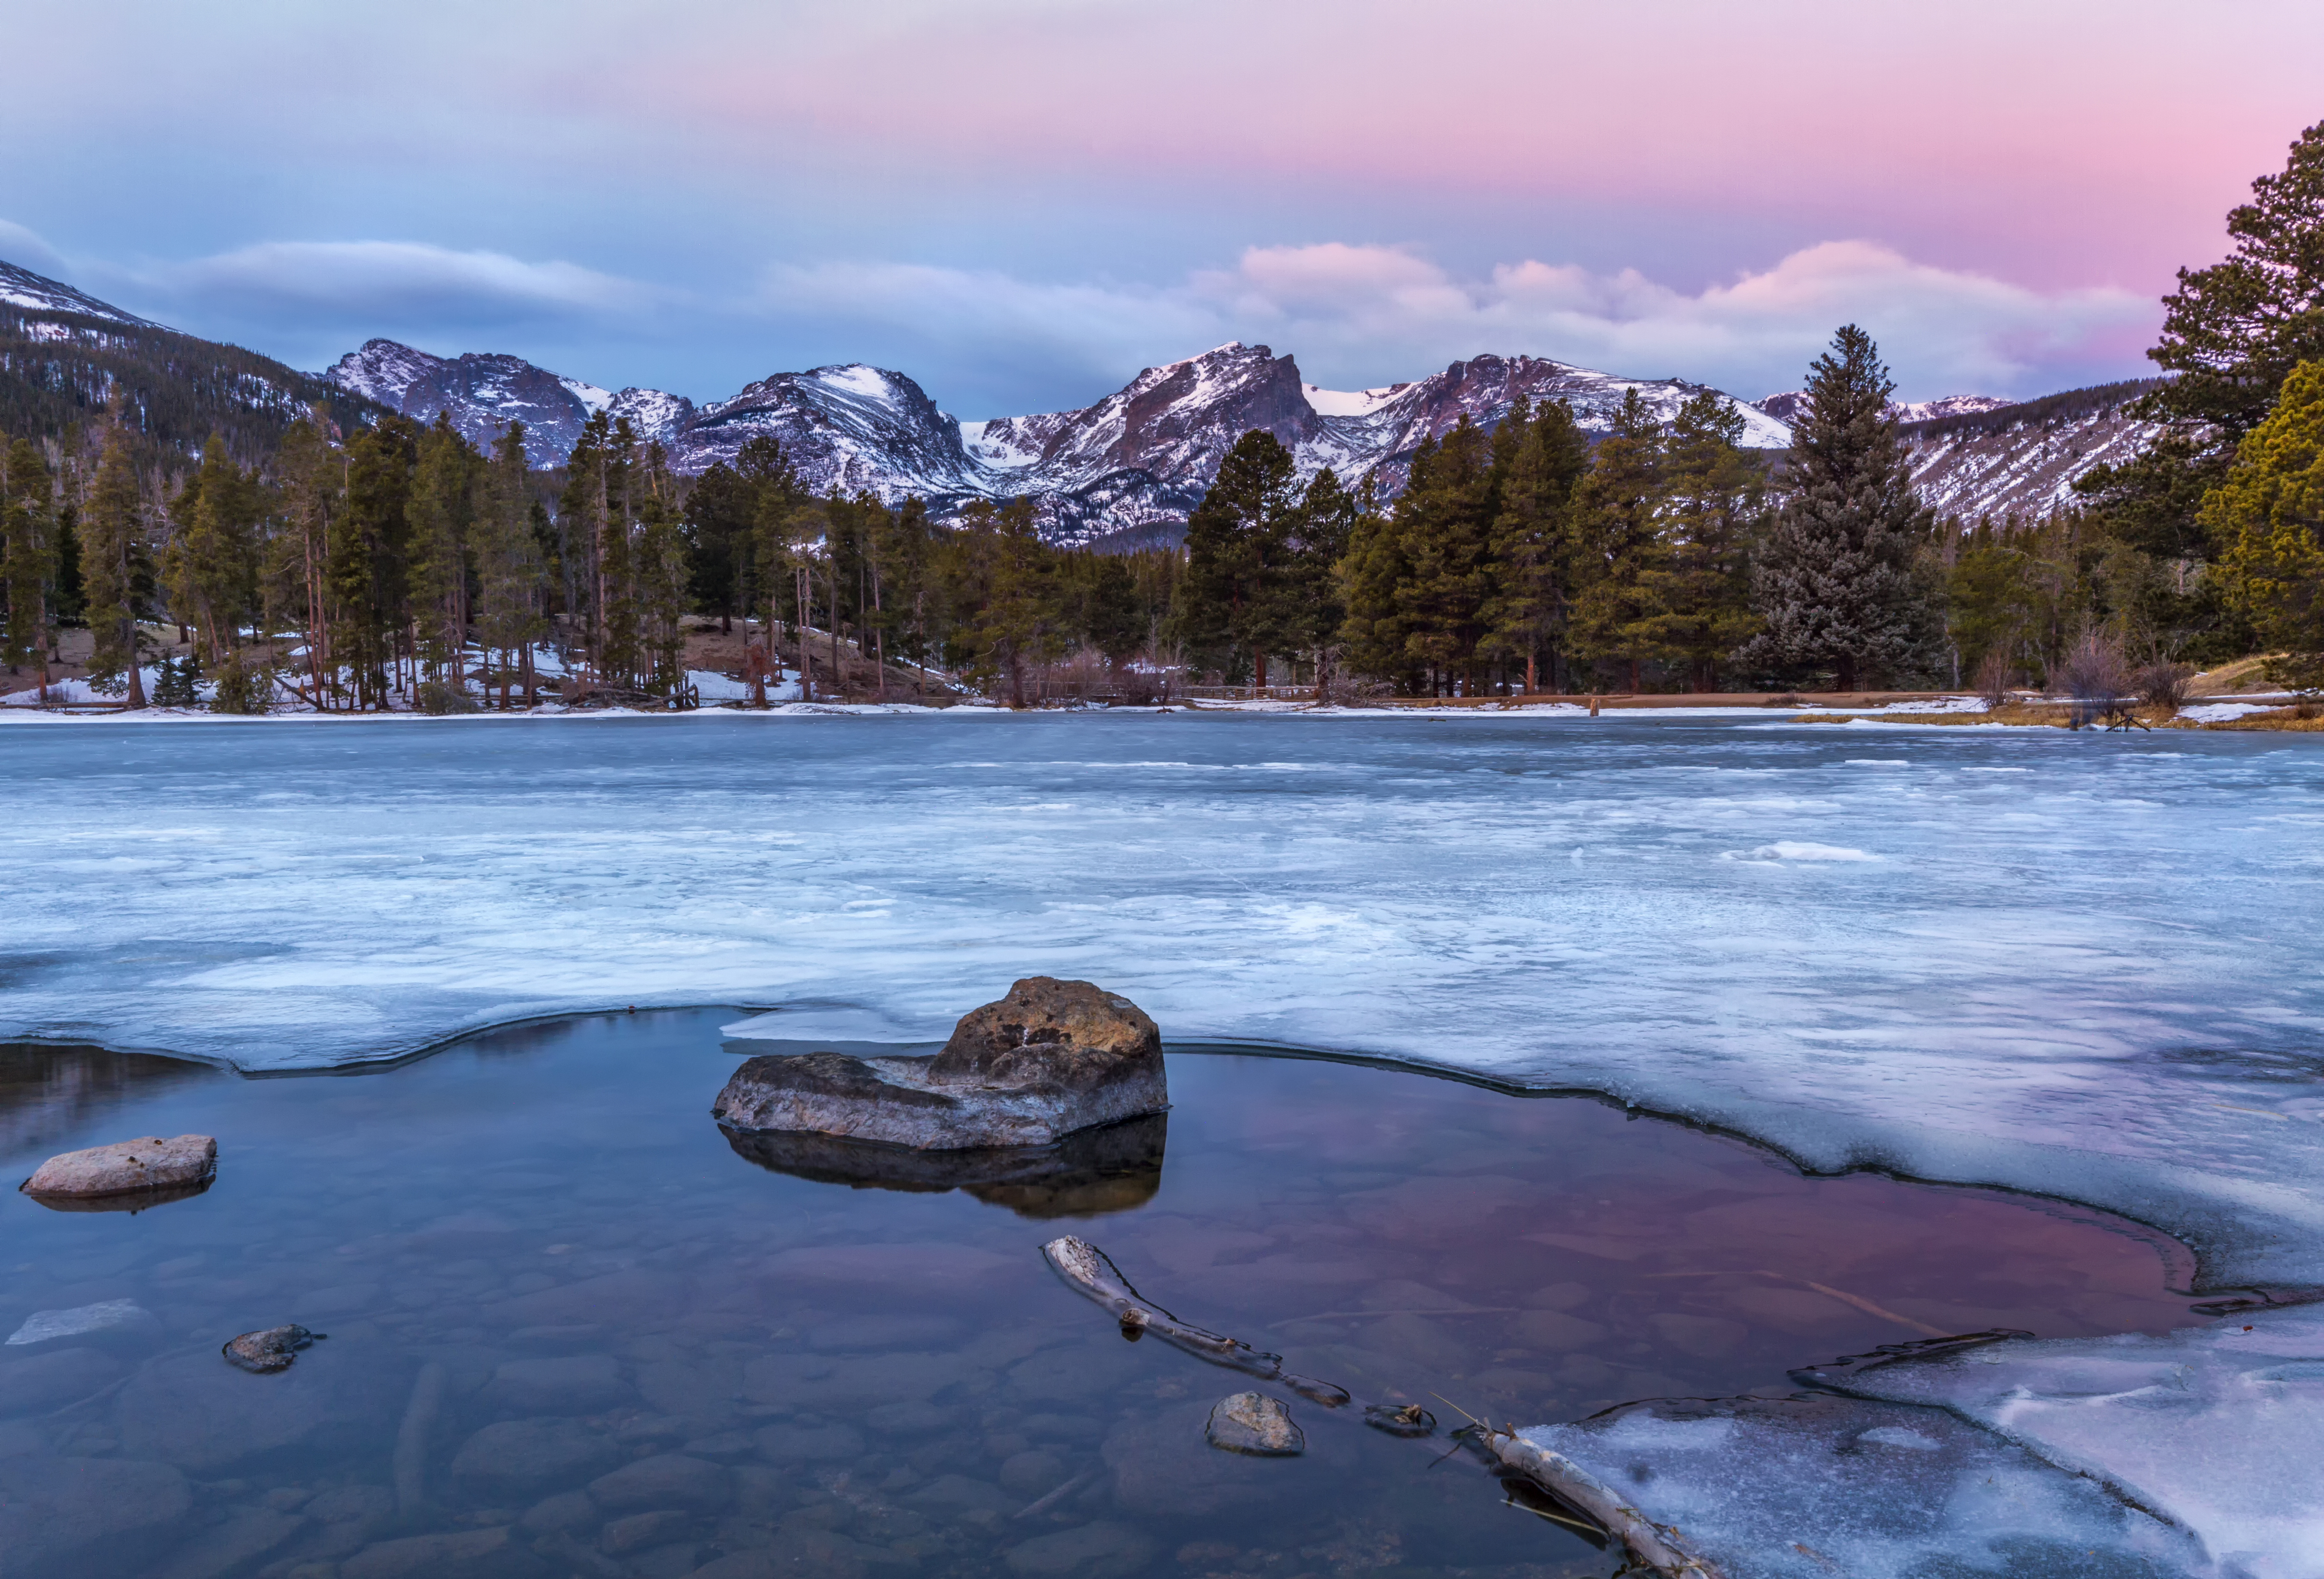 Sunrise on Sprague Lake in Rocky Mountain National park just outside of Estes Park, Colorado